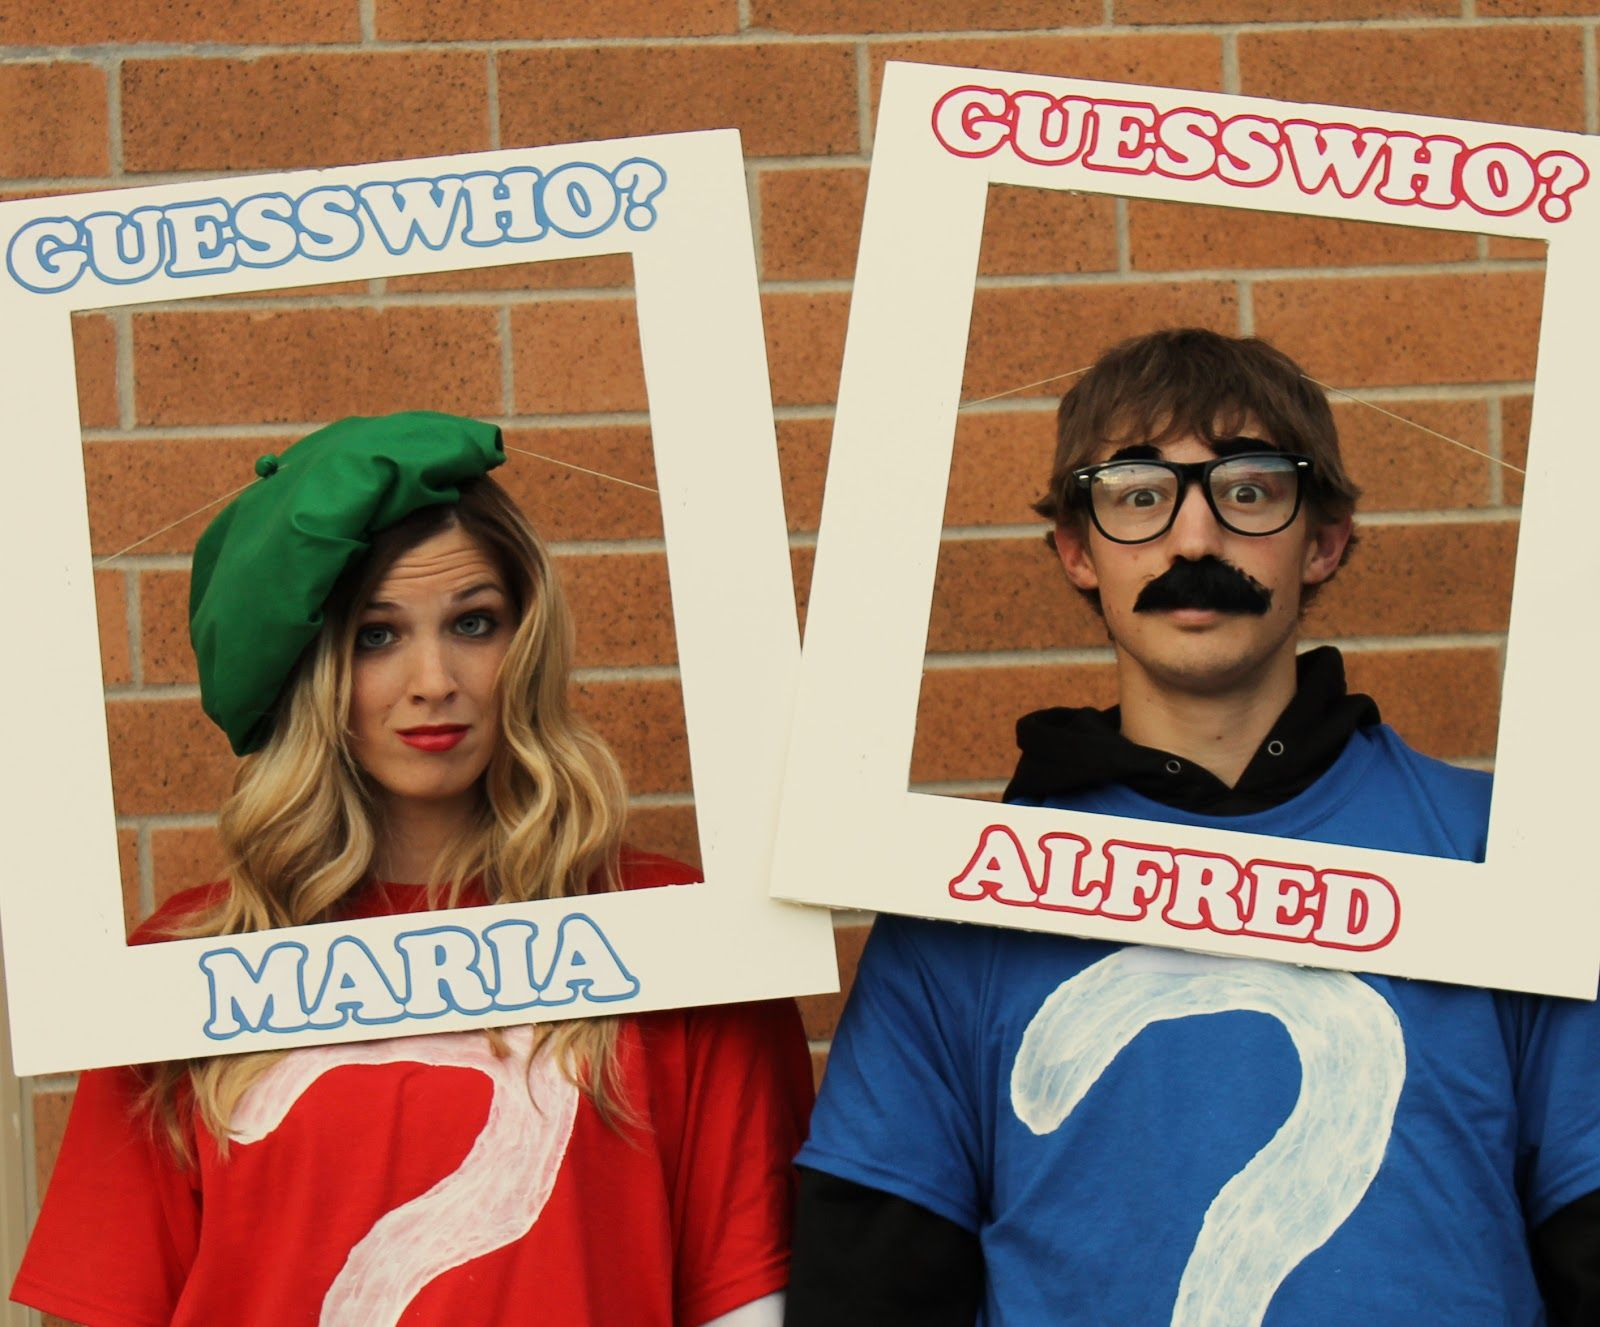 guess who halloween costume - Google Search